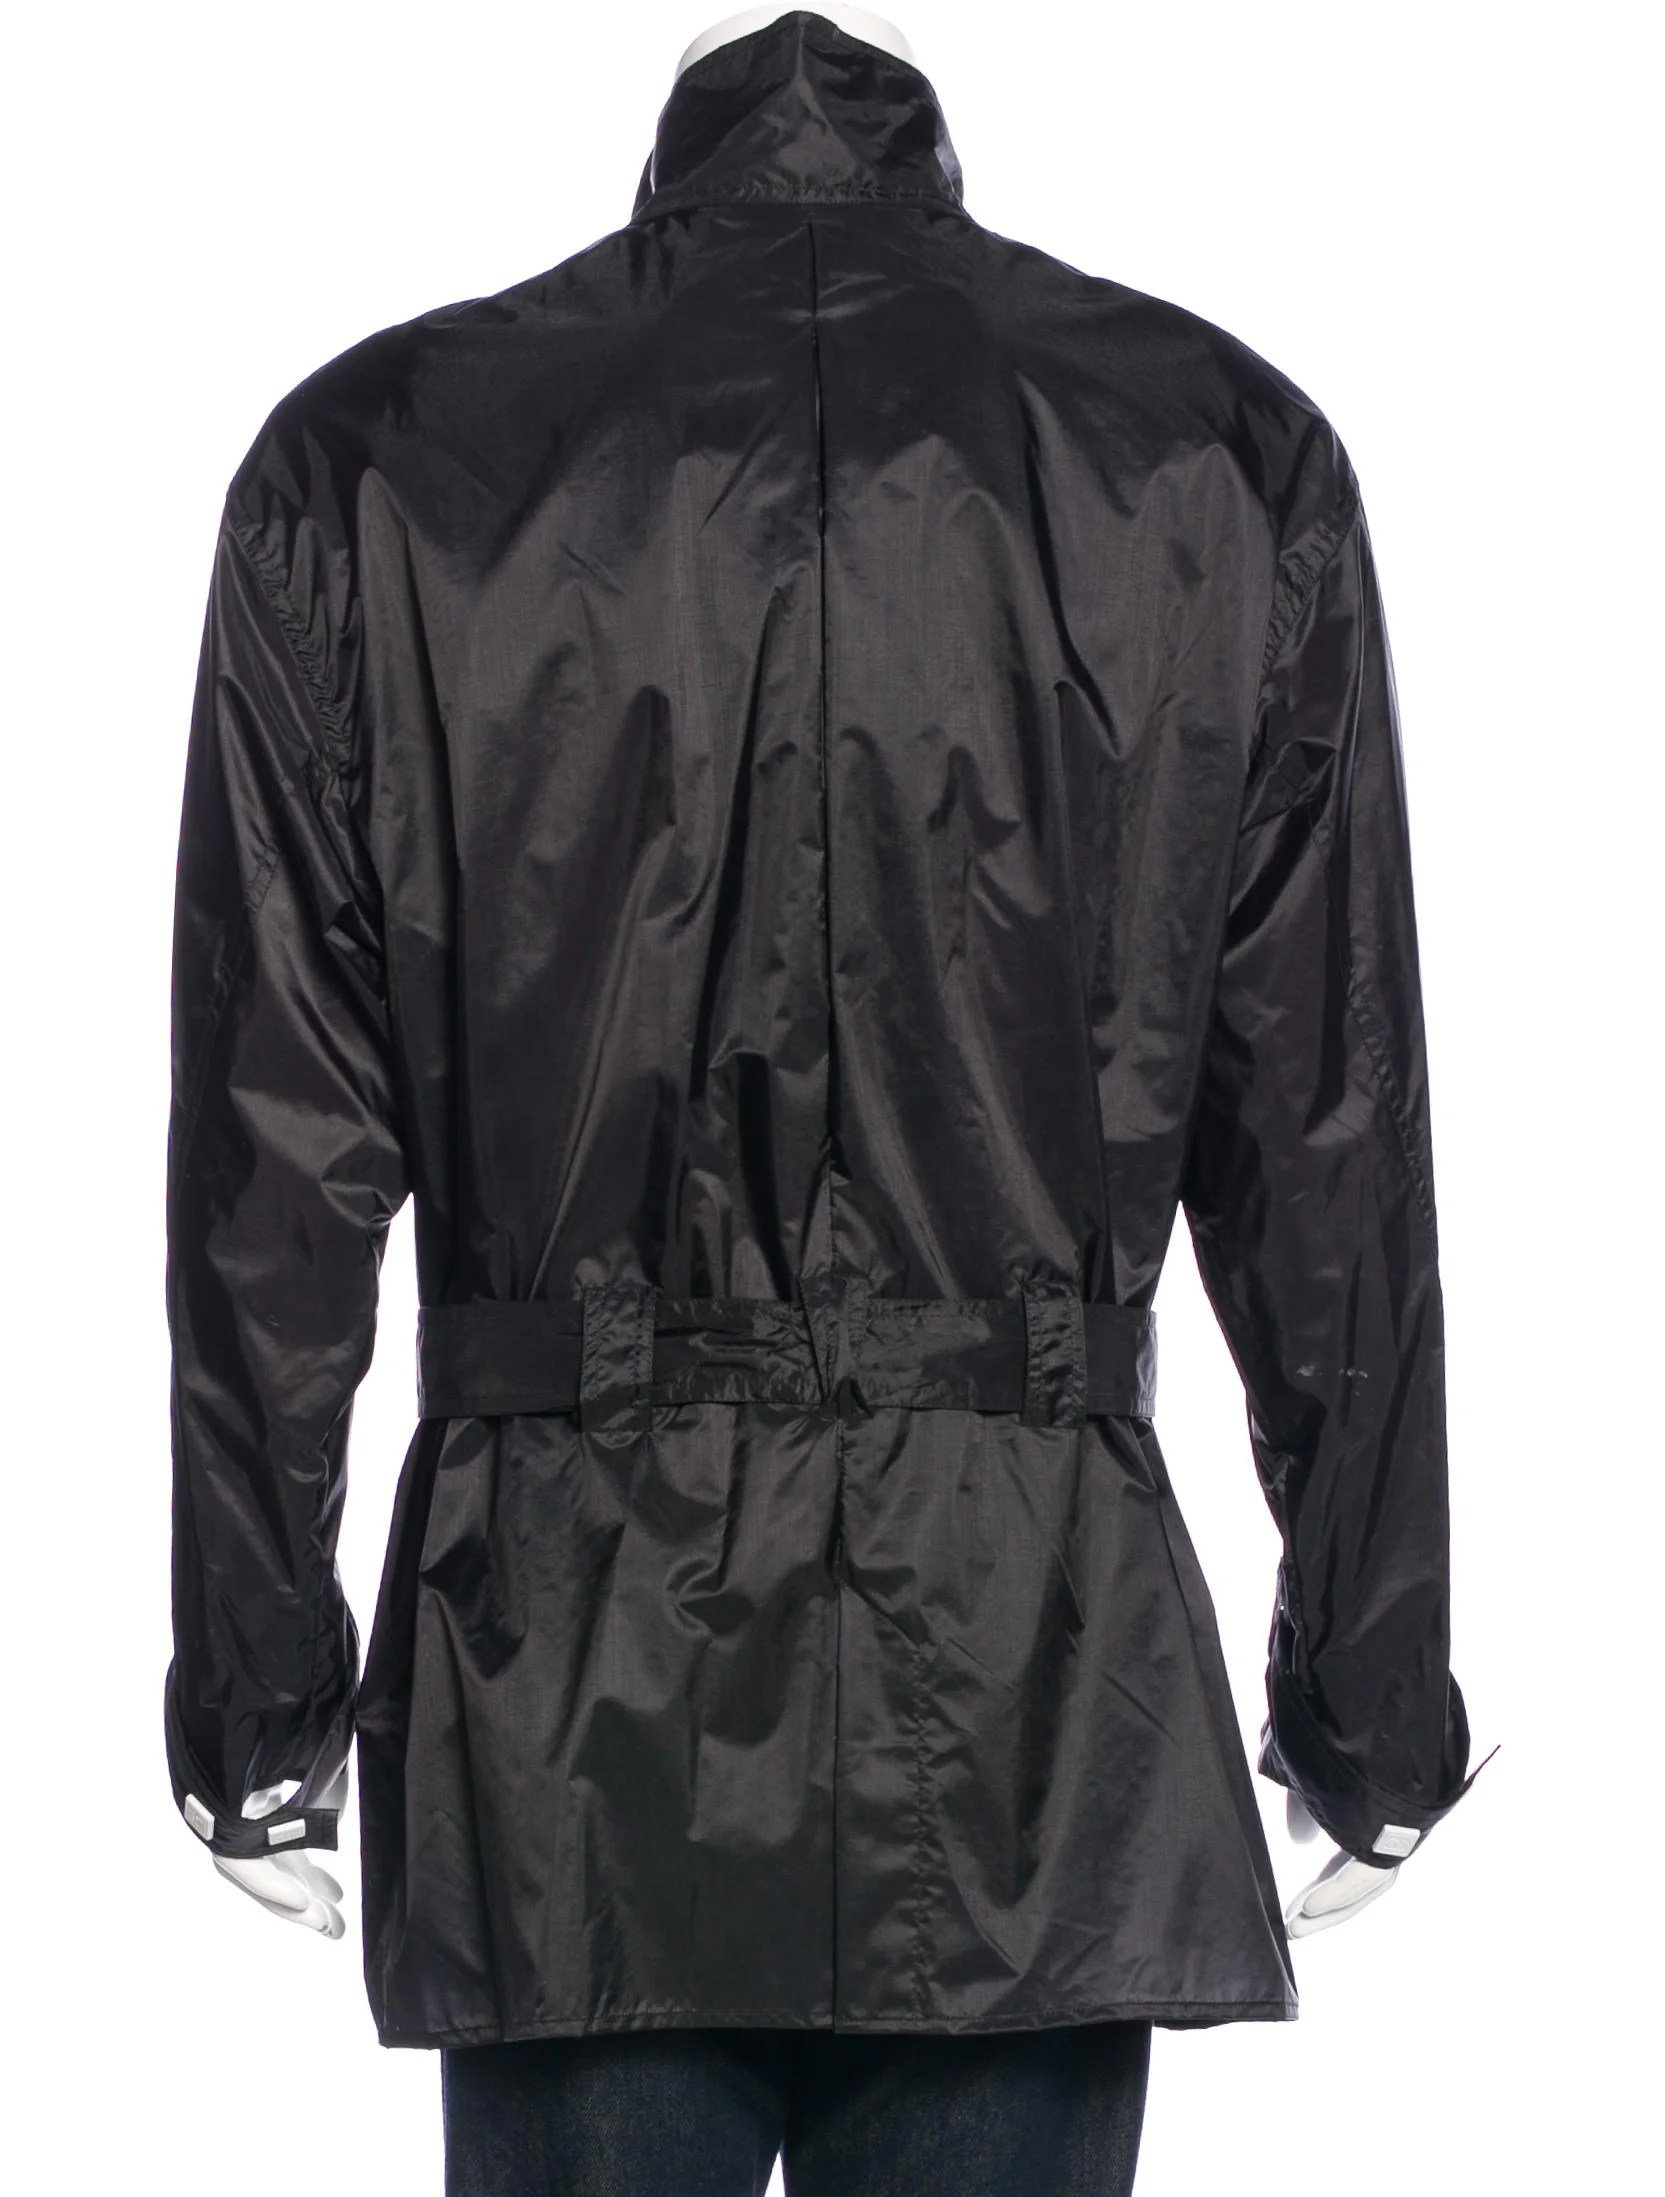 Anorak Chairs Chanel Sport Anorak Jacket Clothing Cha163975 The